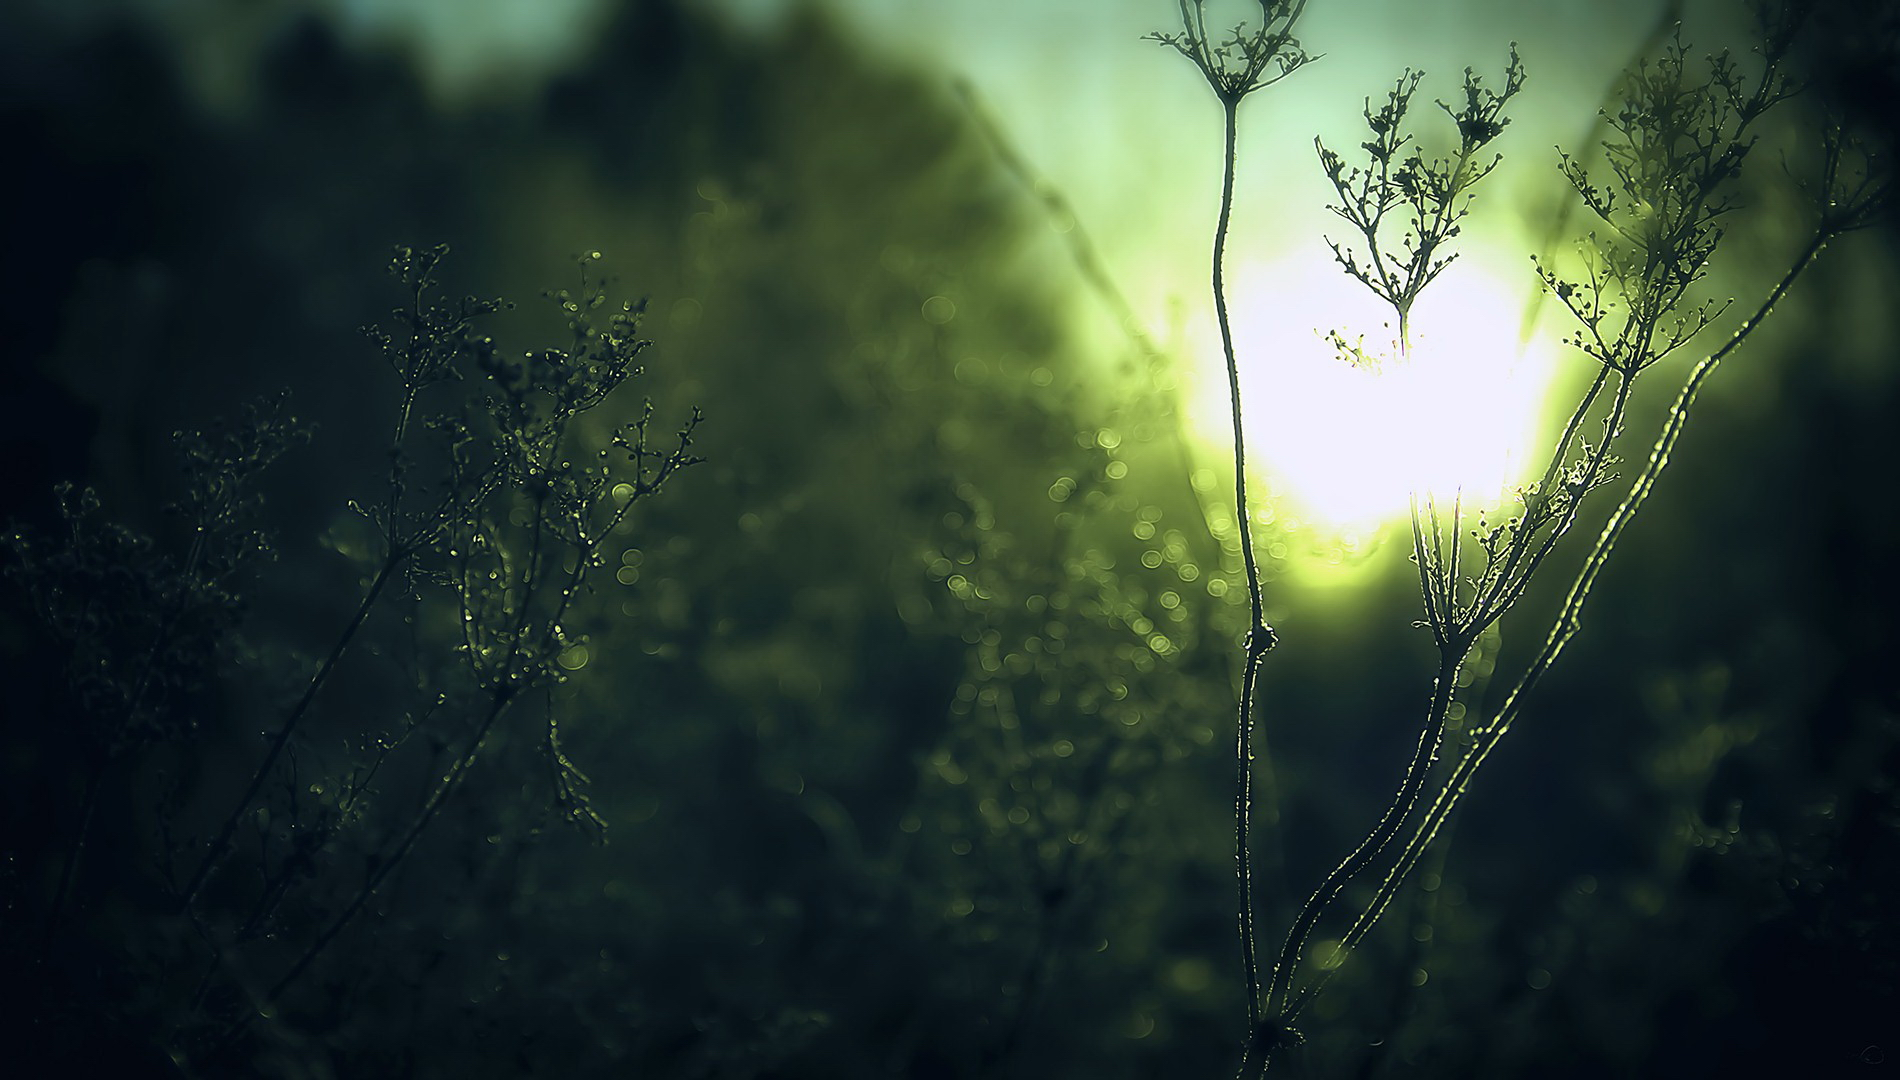 Green blur   Photos and Wallpapers   Pinterest   Blur picture, Free ...